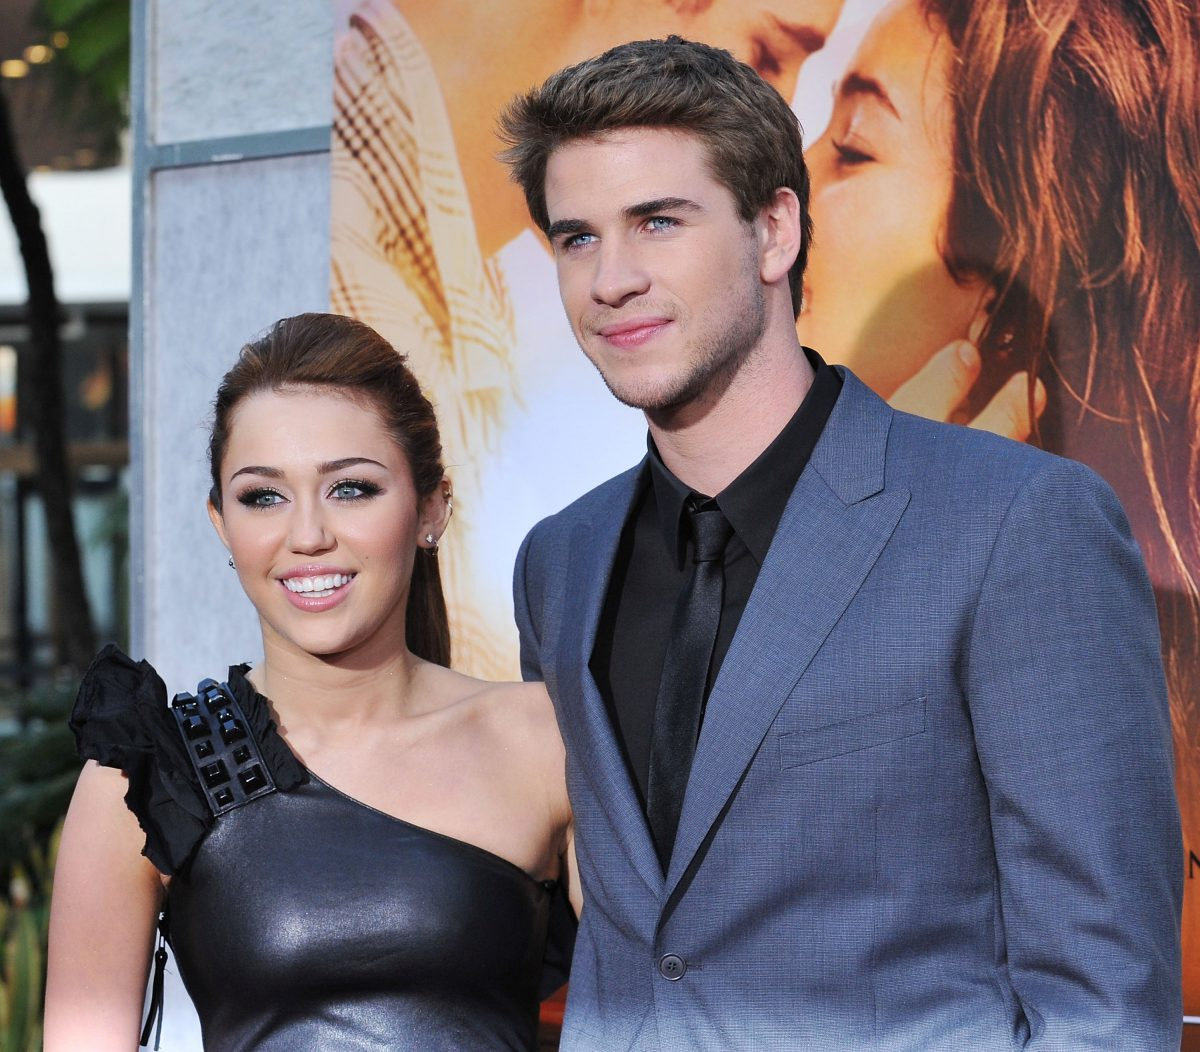 Miley Cyrus Just Opened Up About Losing Her Virginity To Liam Hemsworth